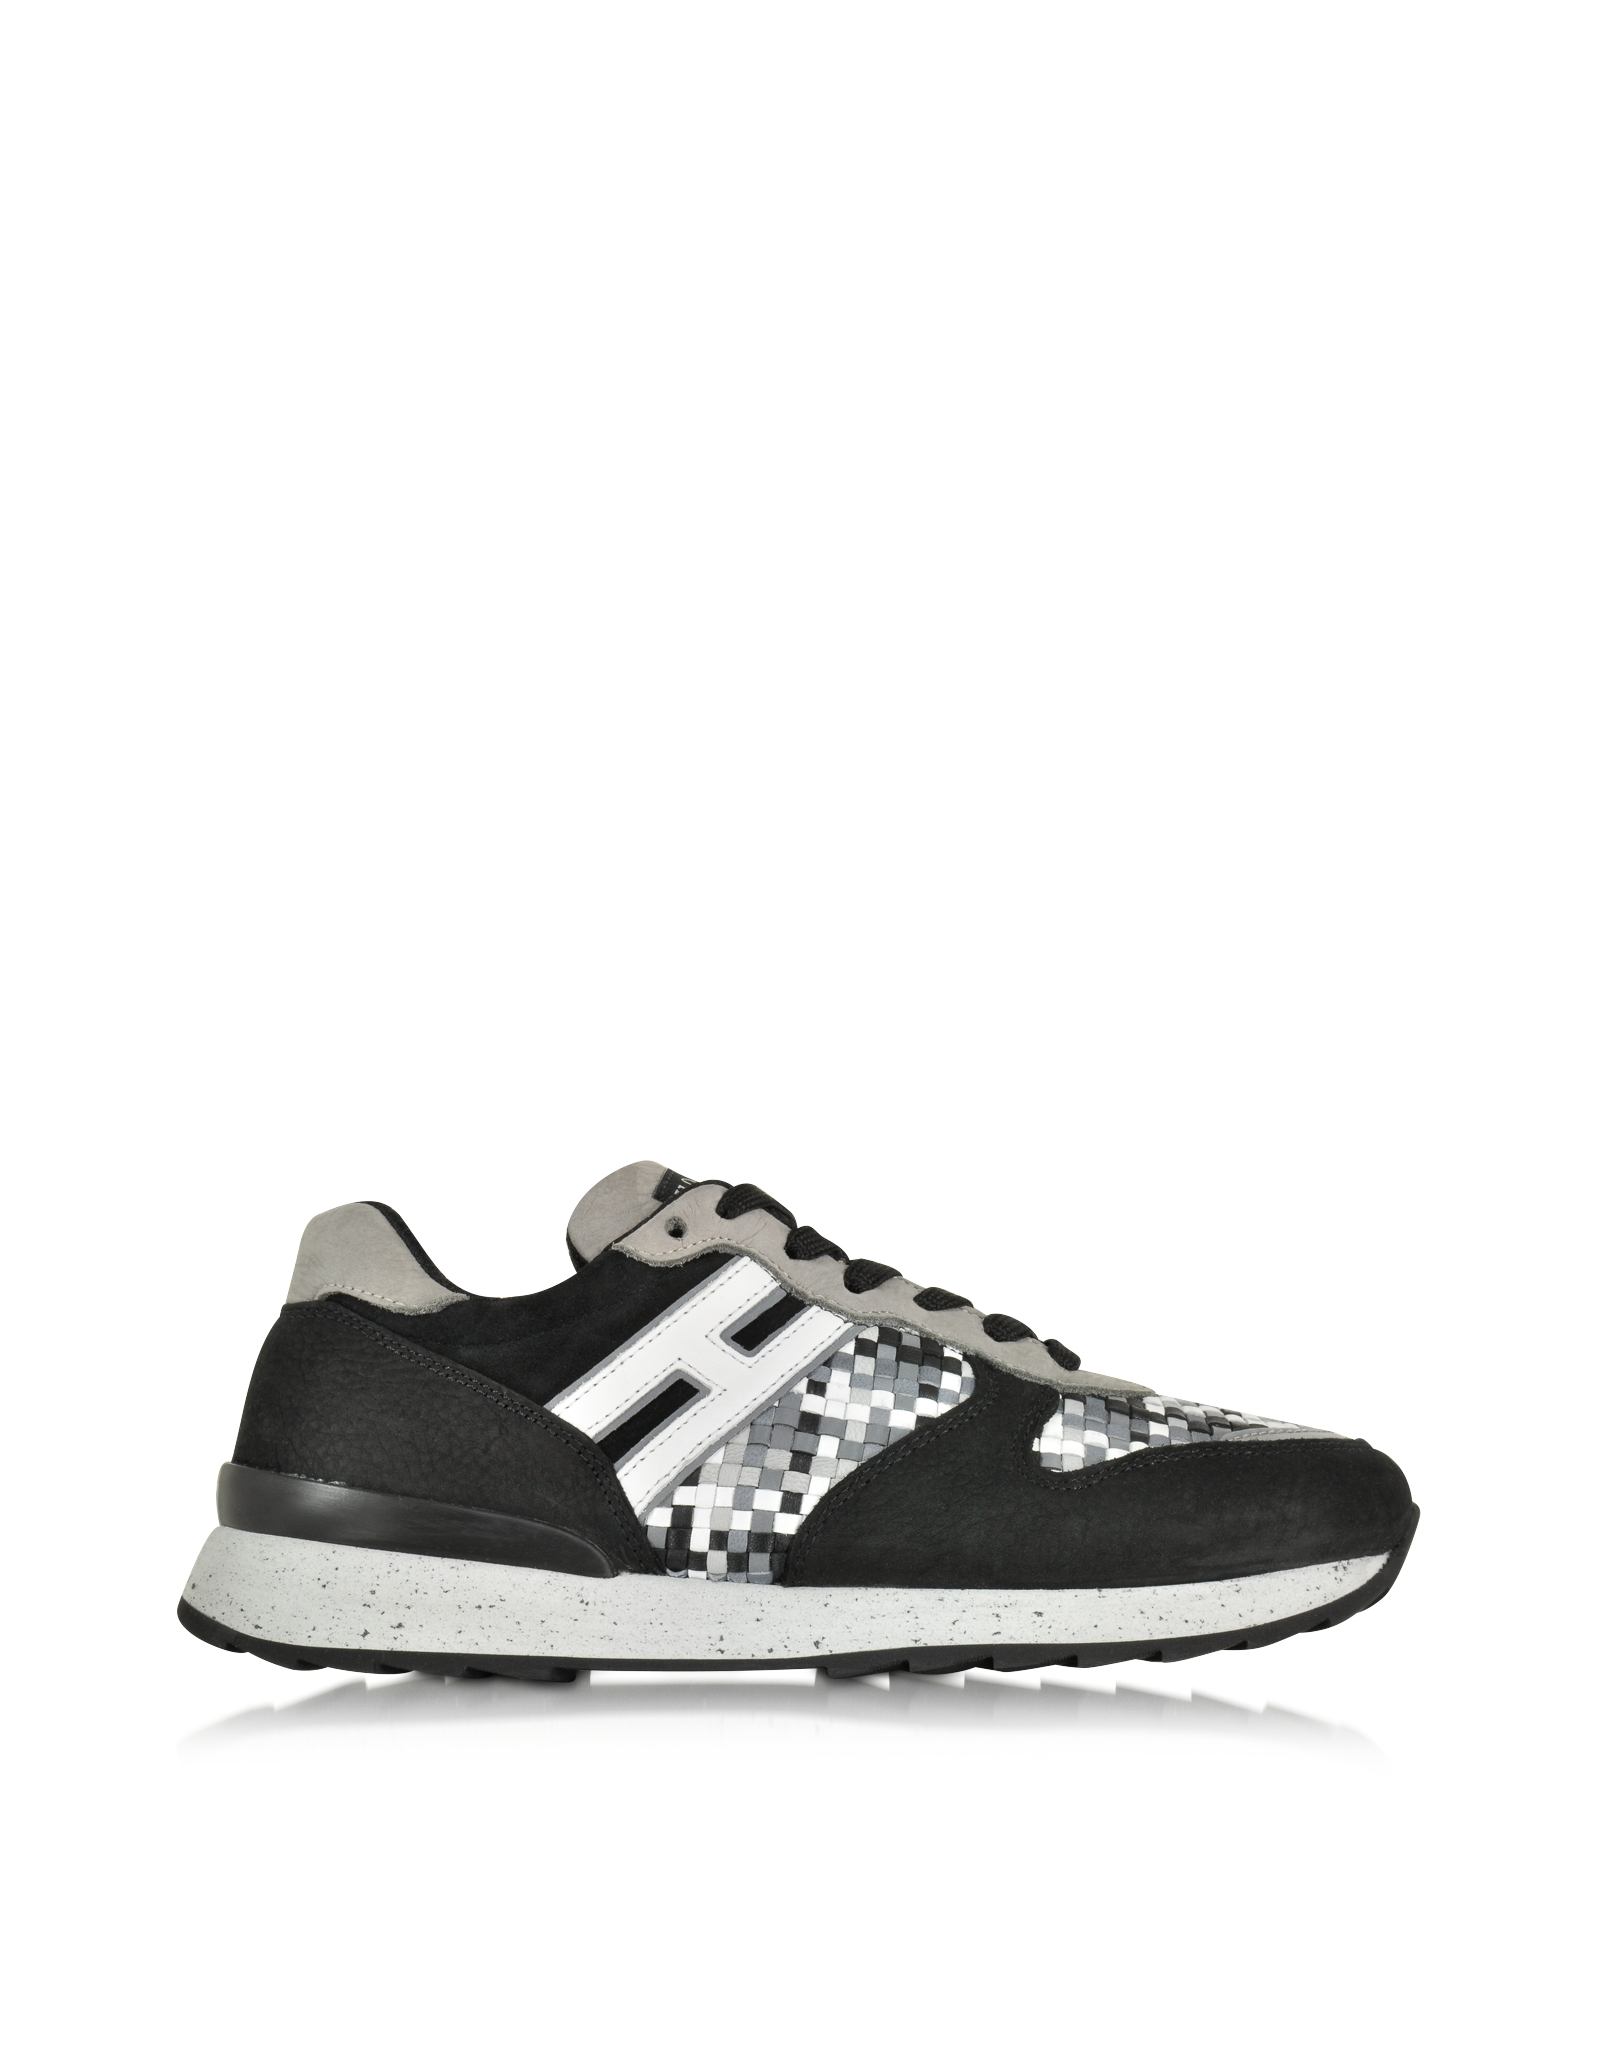 Forzieri Hogan Lyst Hogan Rebel Multicolor Leather And Suede Sneaker